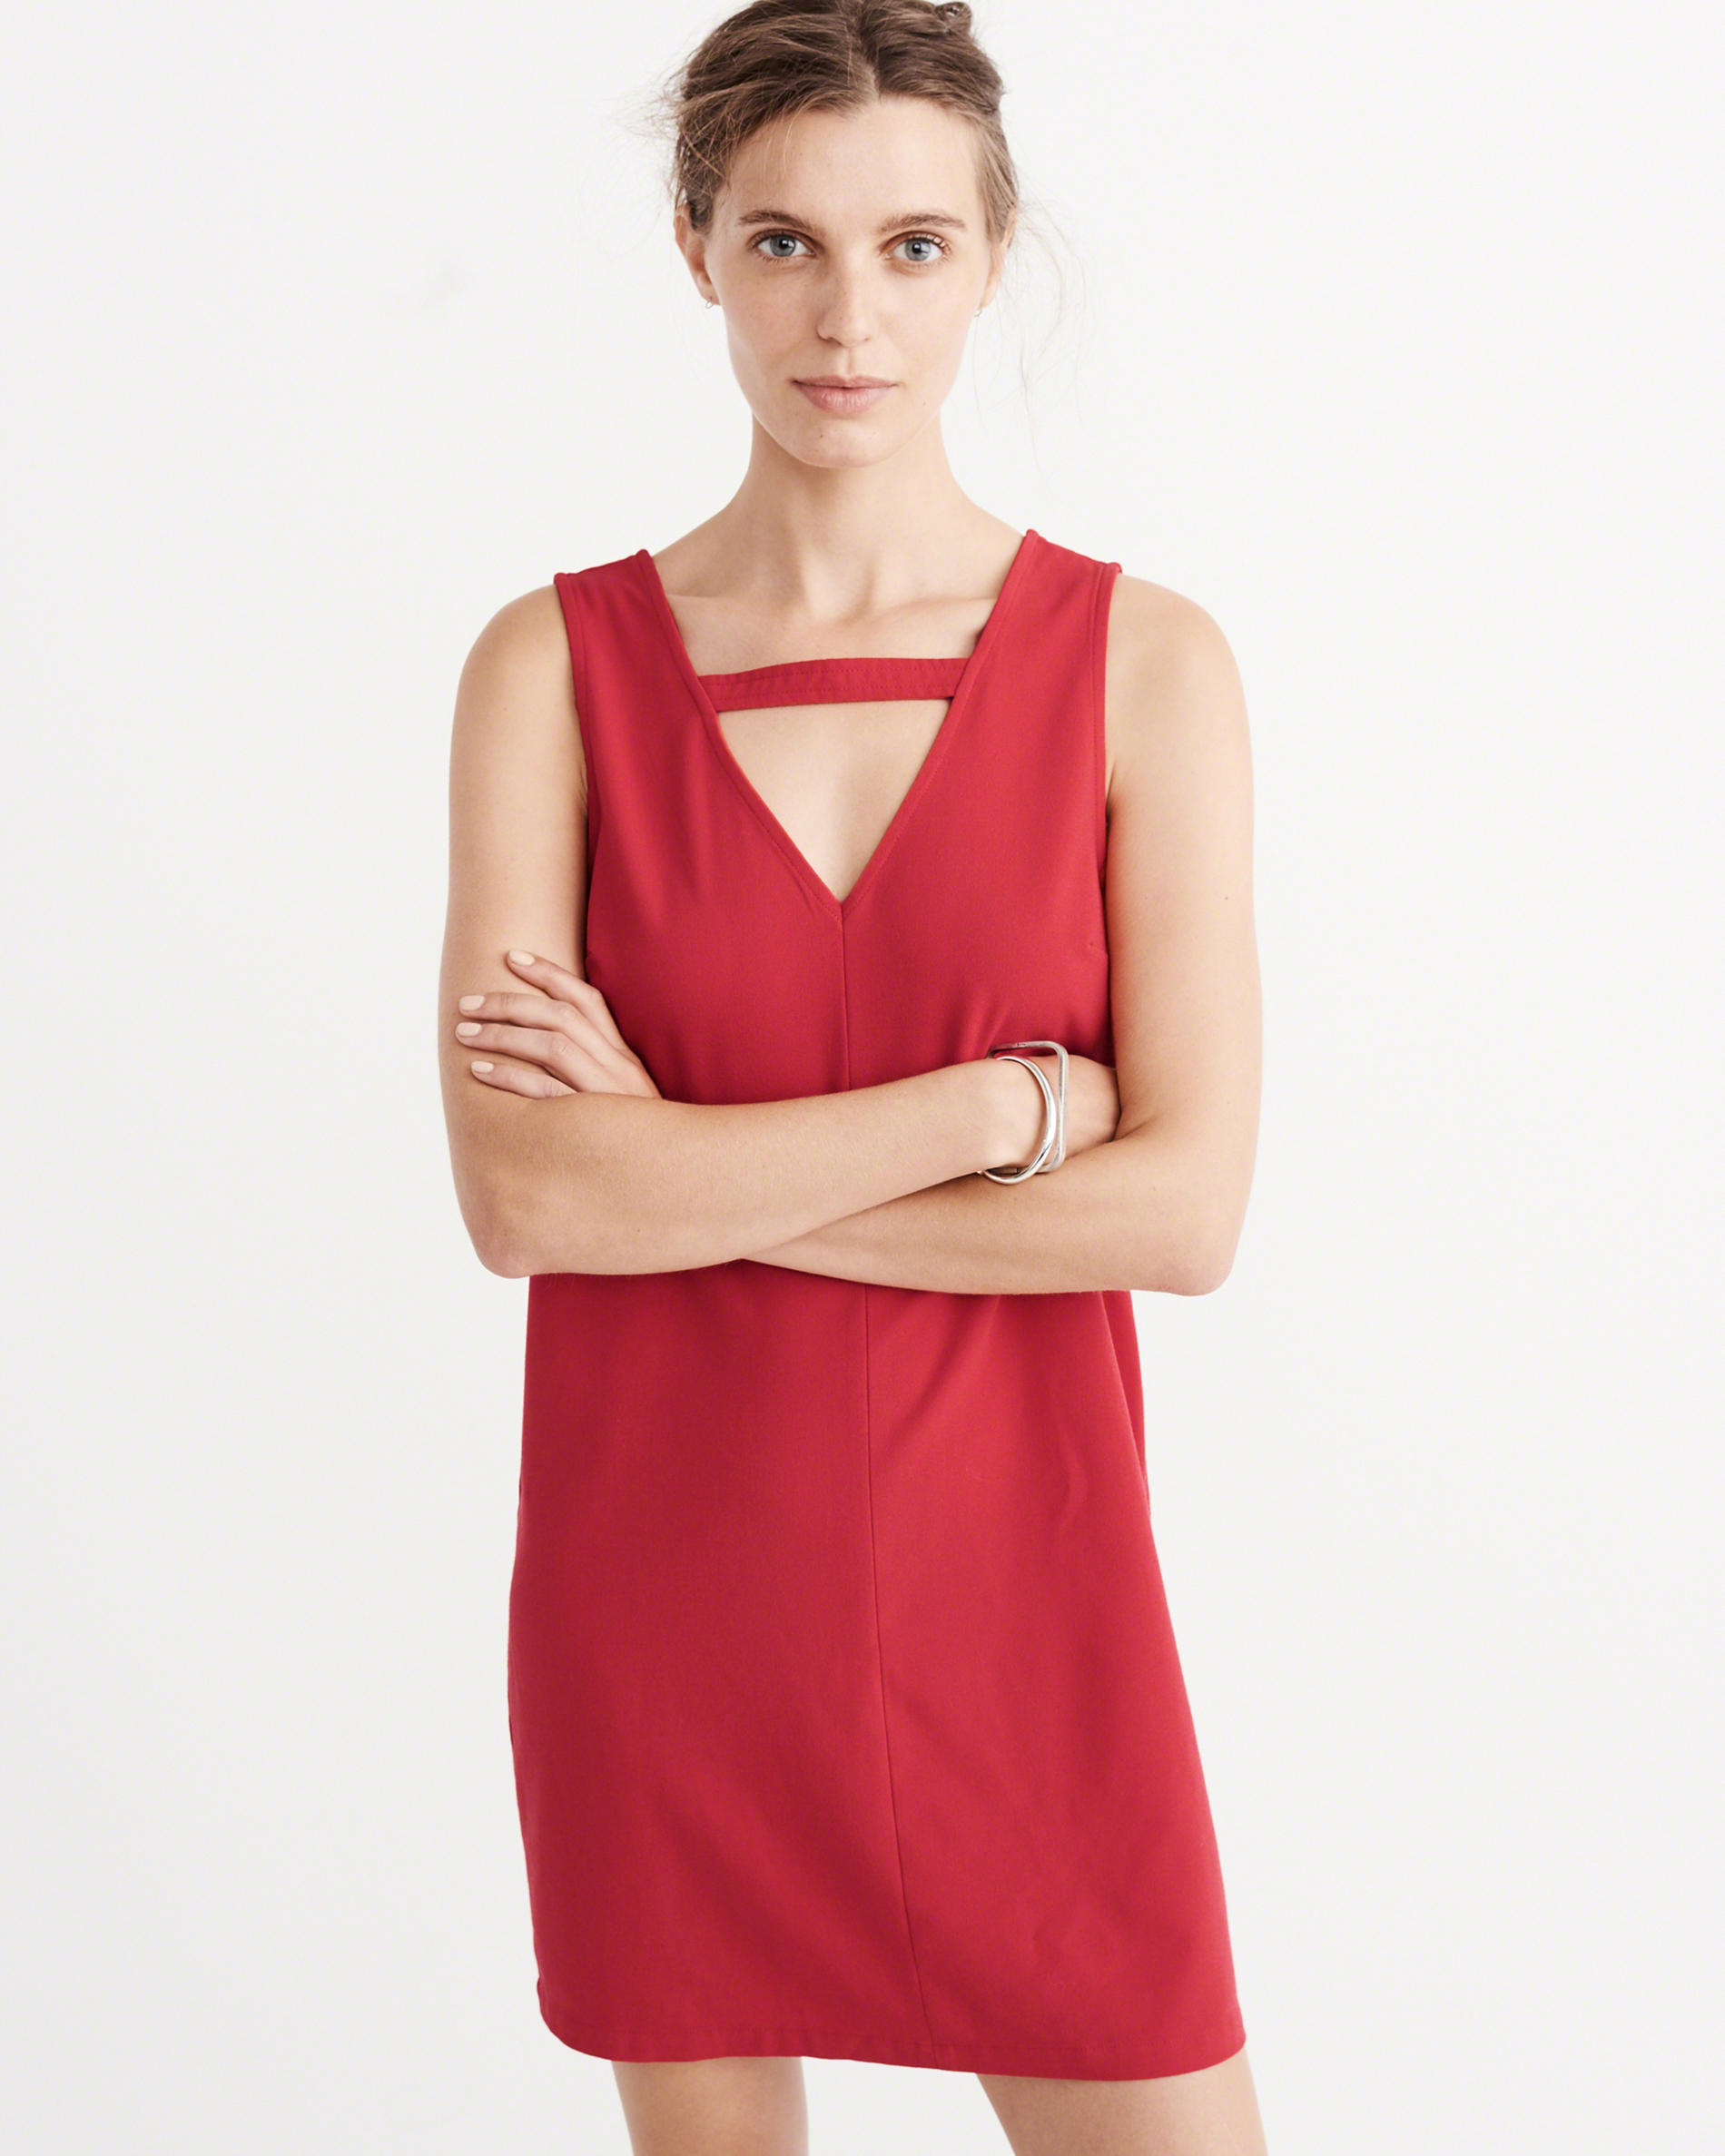 ambercrombie-fitch-extra-sales-20 (6)